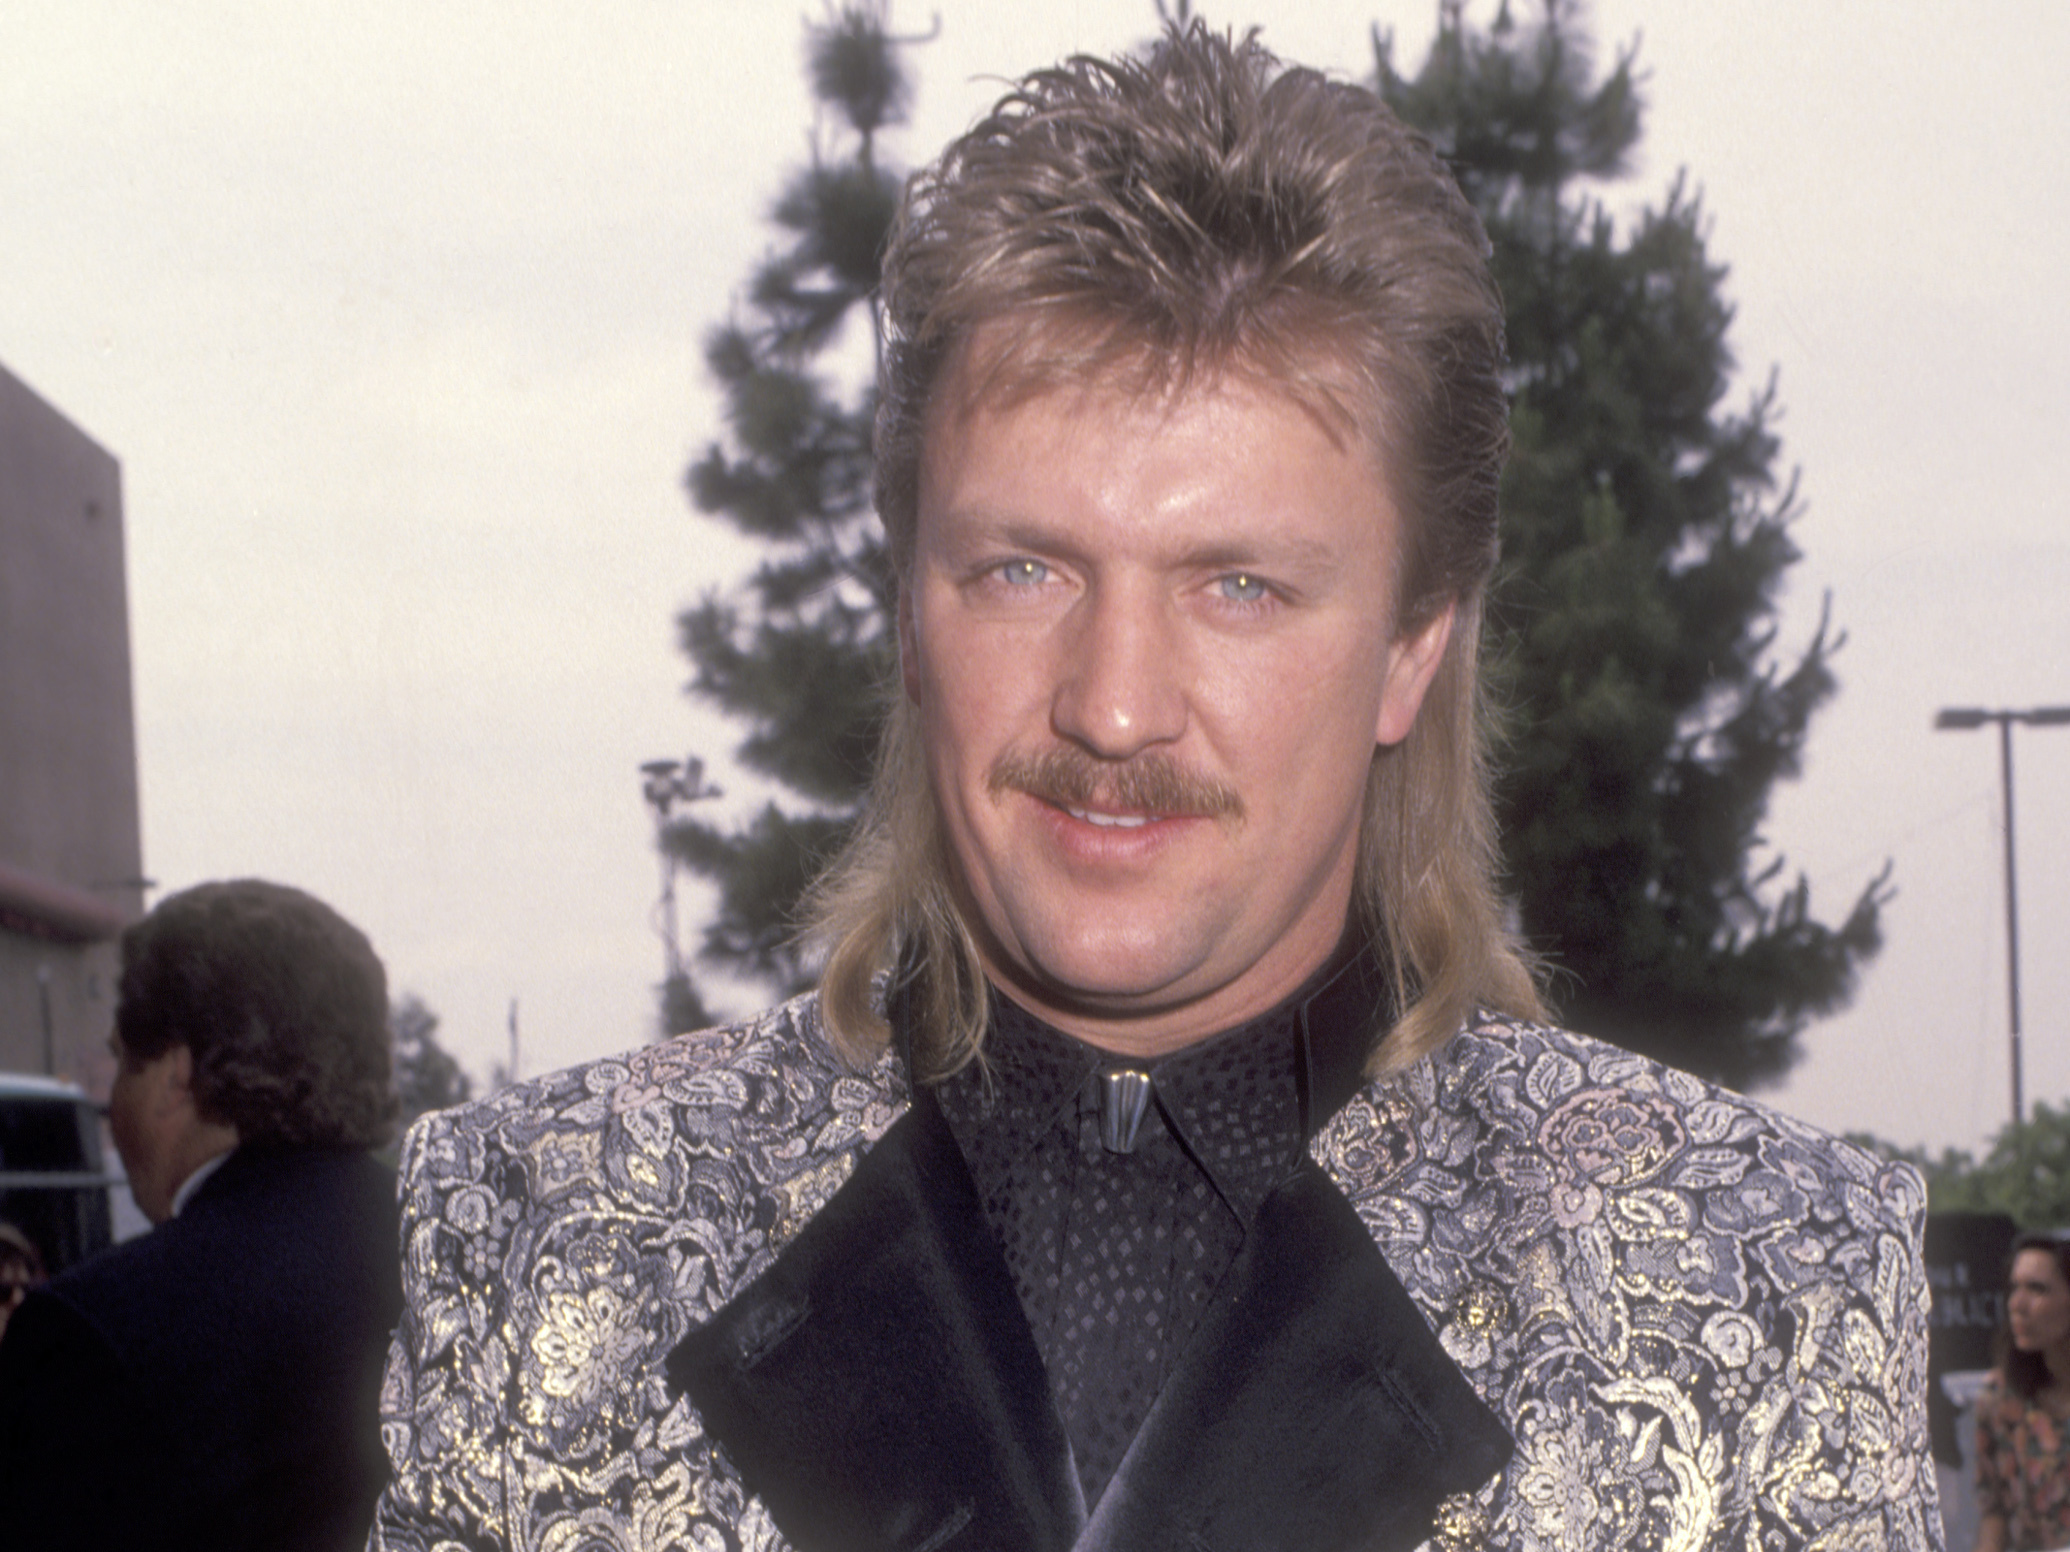 Joe Diffie, Wry Country Traditionalist, Dead At 61 Following COVID-19 Diagnosis